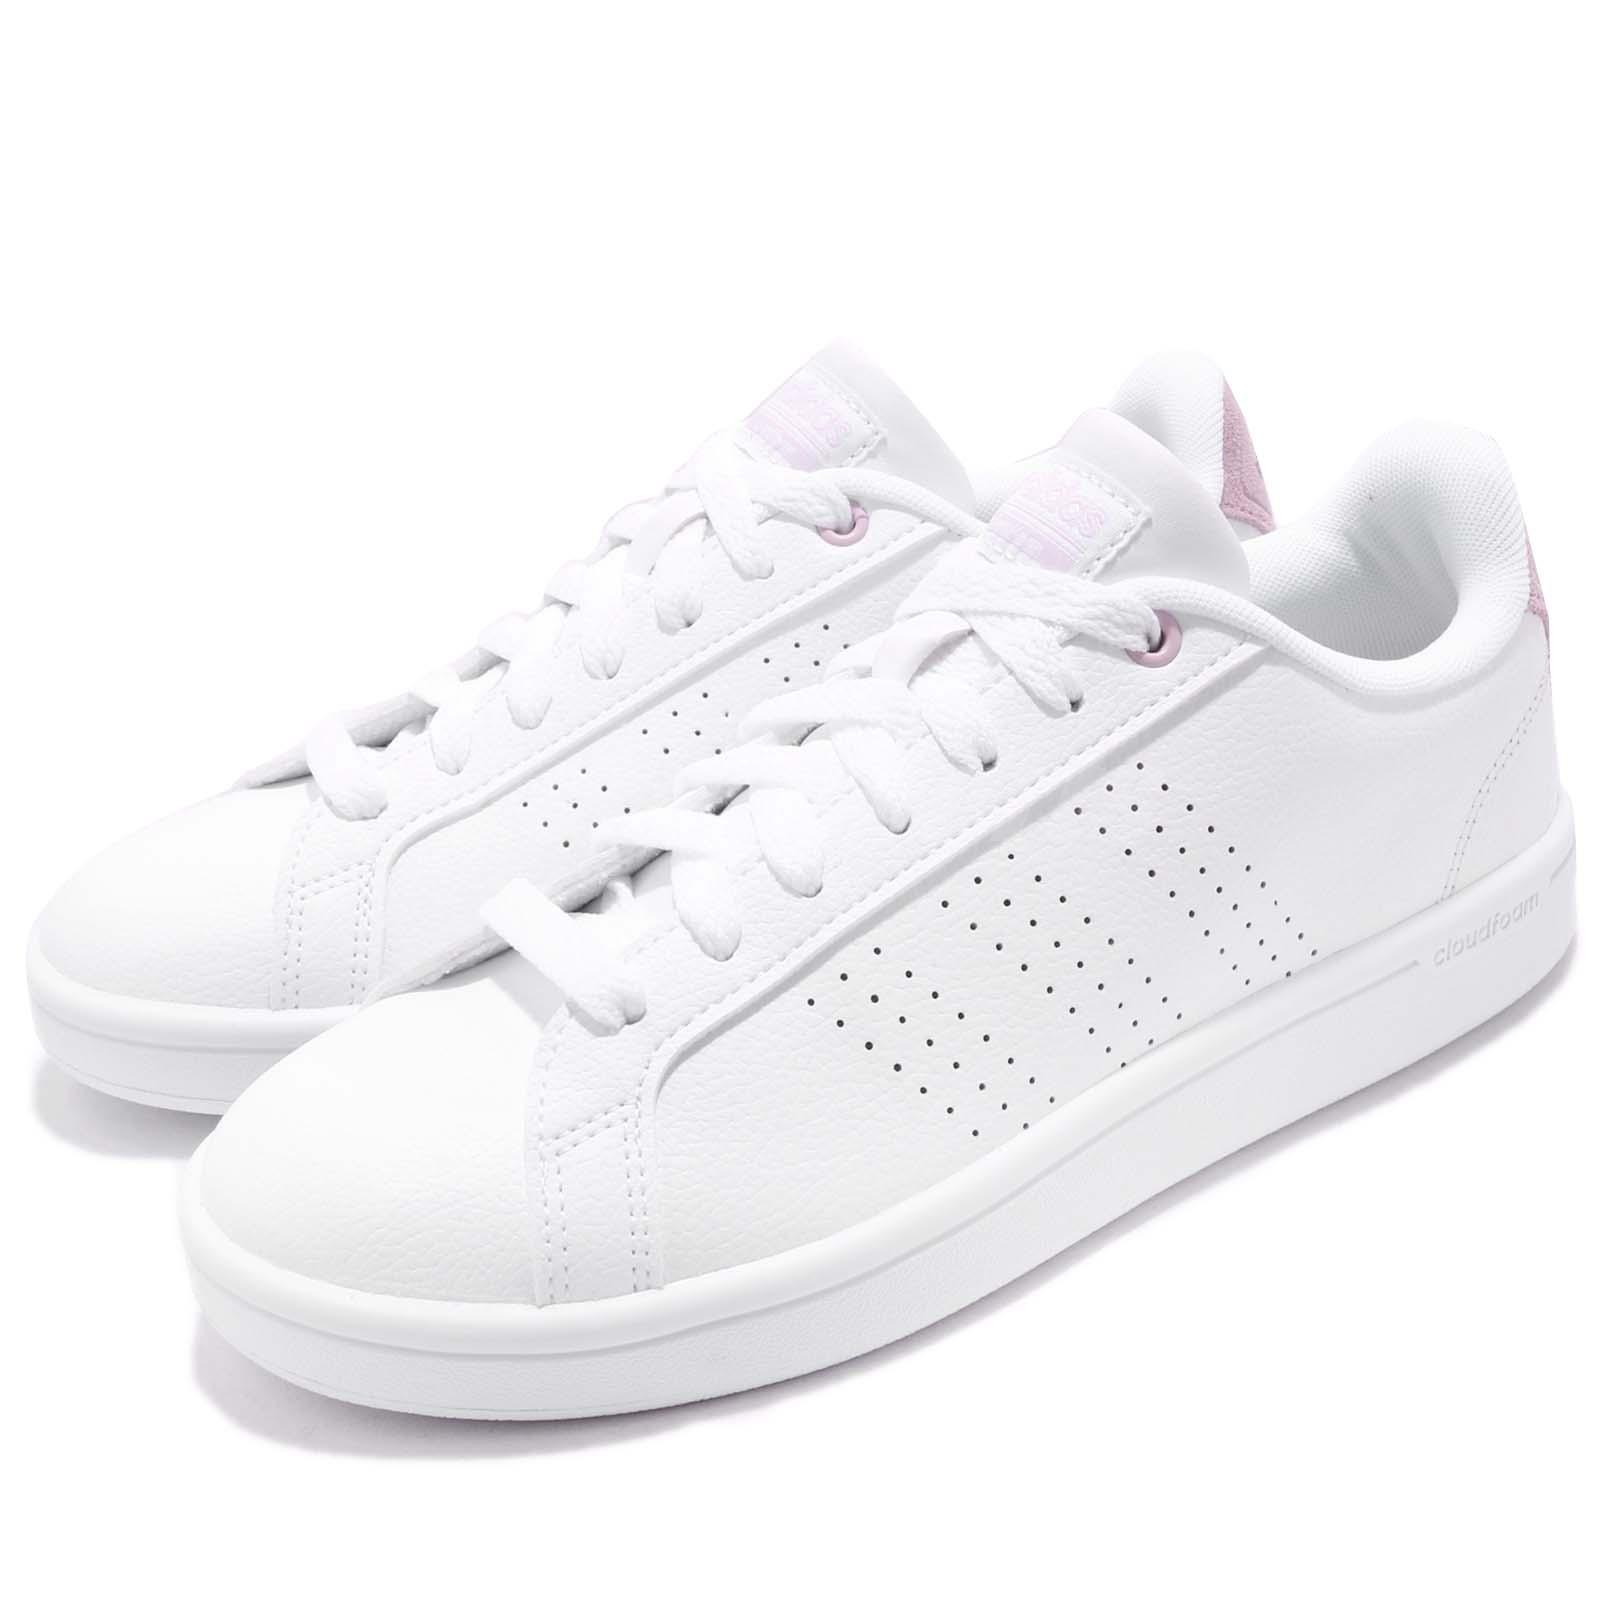 Details about adidas CF Advantage CL CloudFoam White Pink Women Casual  Shoes Sneakers DB0893